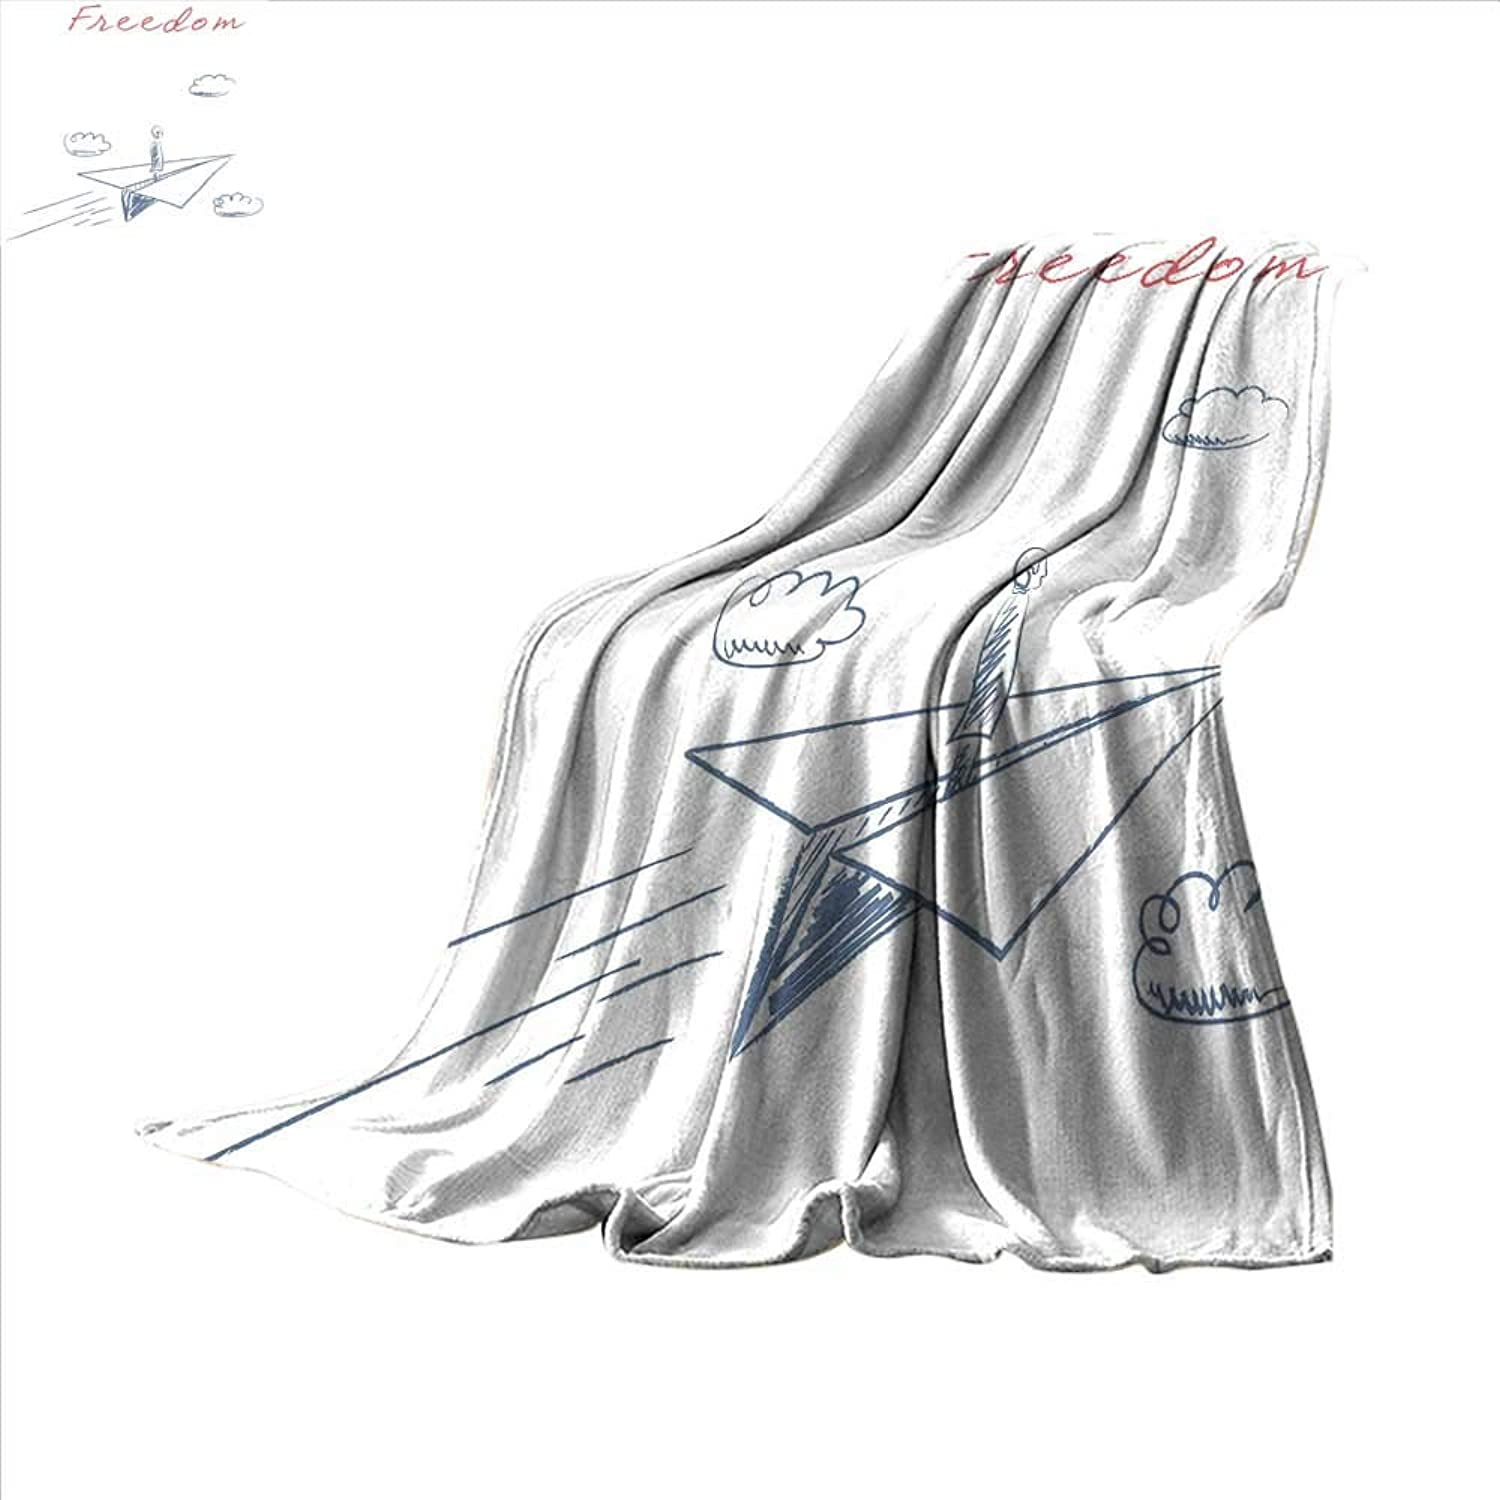 Smallbeefly Adventure Digital Printing Blanket Flying Paper Plane in Hand Drawn Sketch Cartoon Style Freedom Text Clouds Summer Quilt Comforter 60 x50  blueegrey Red White